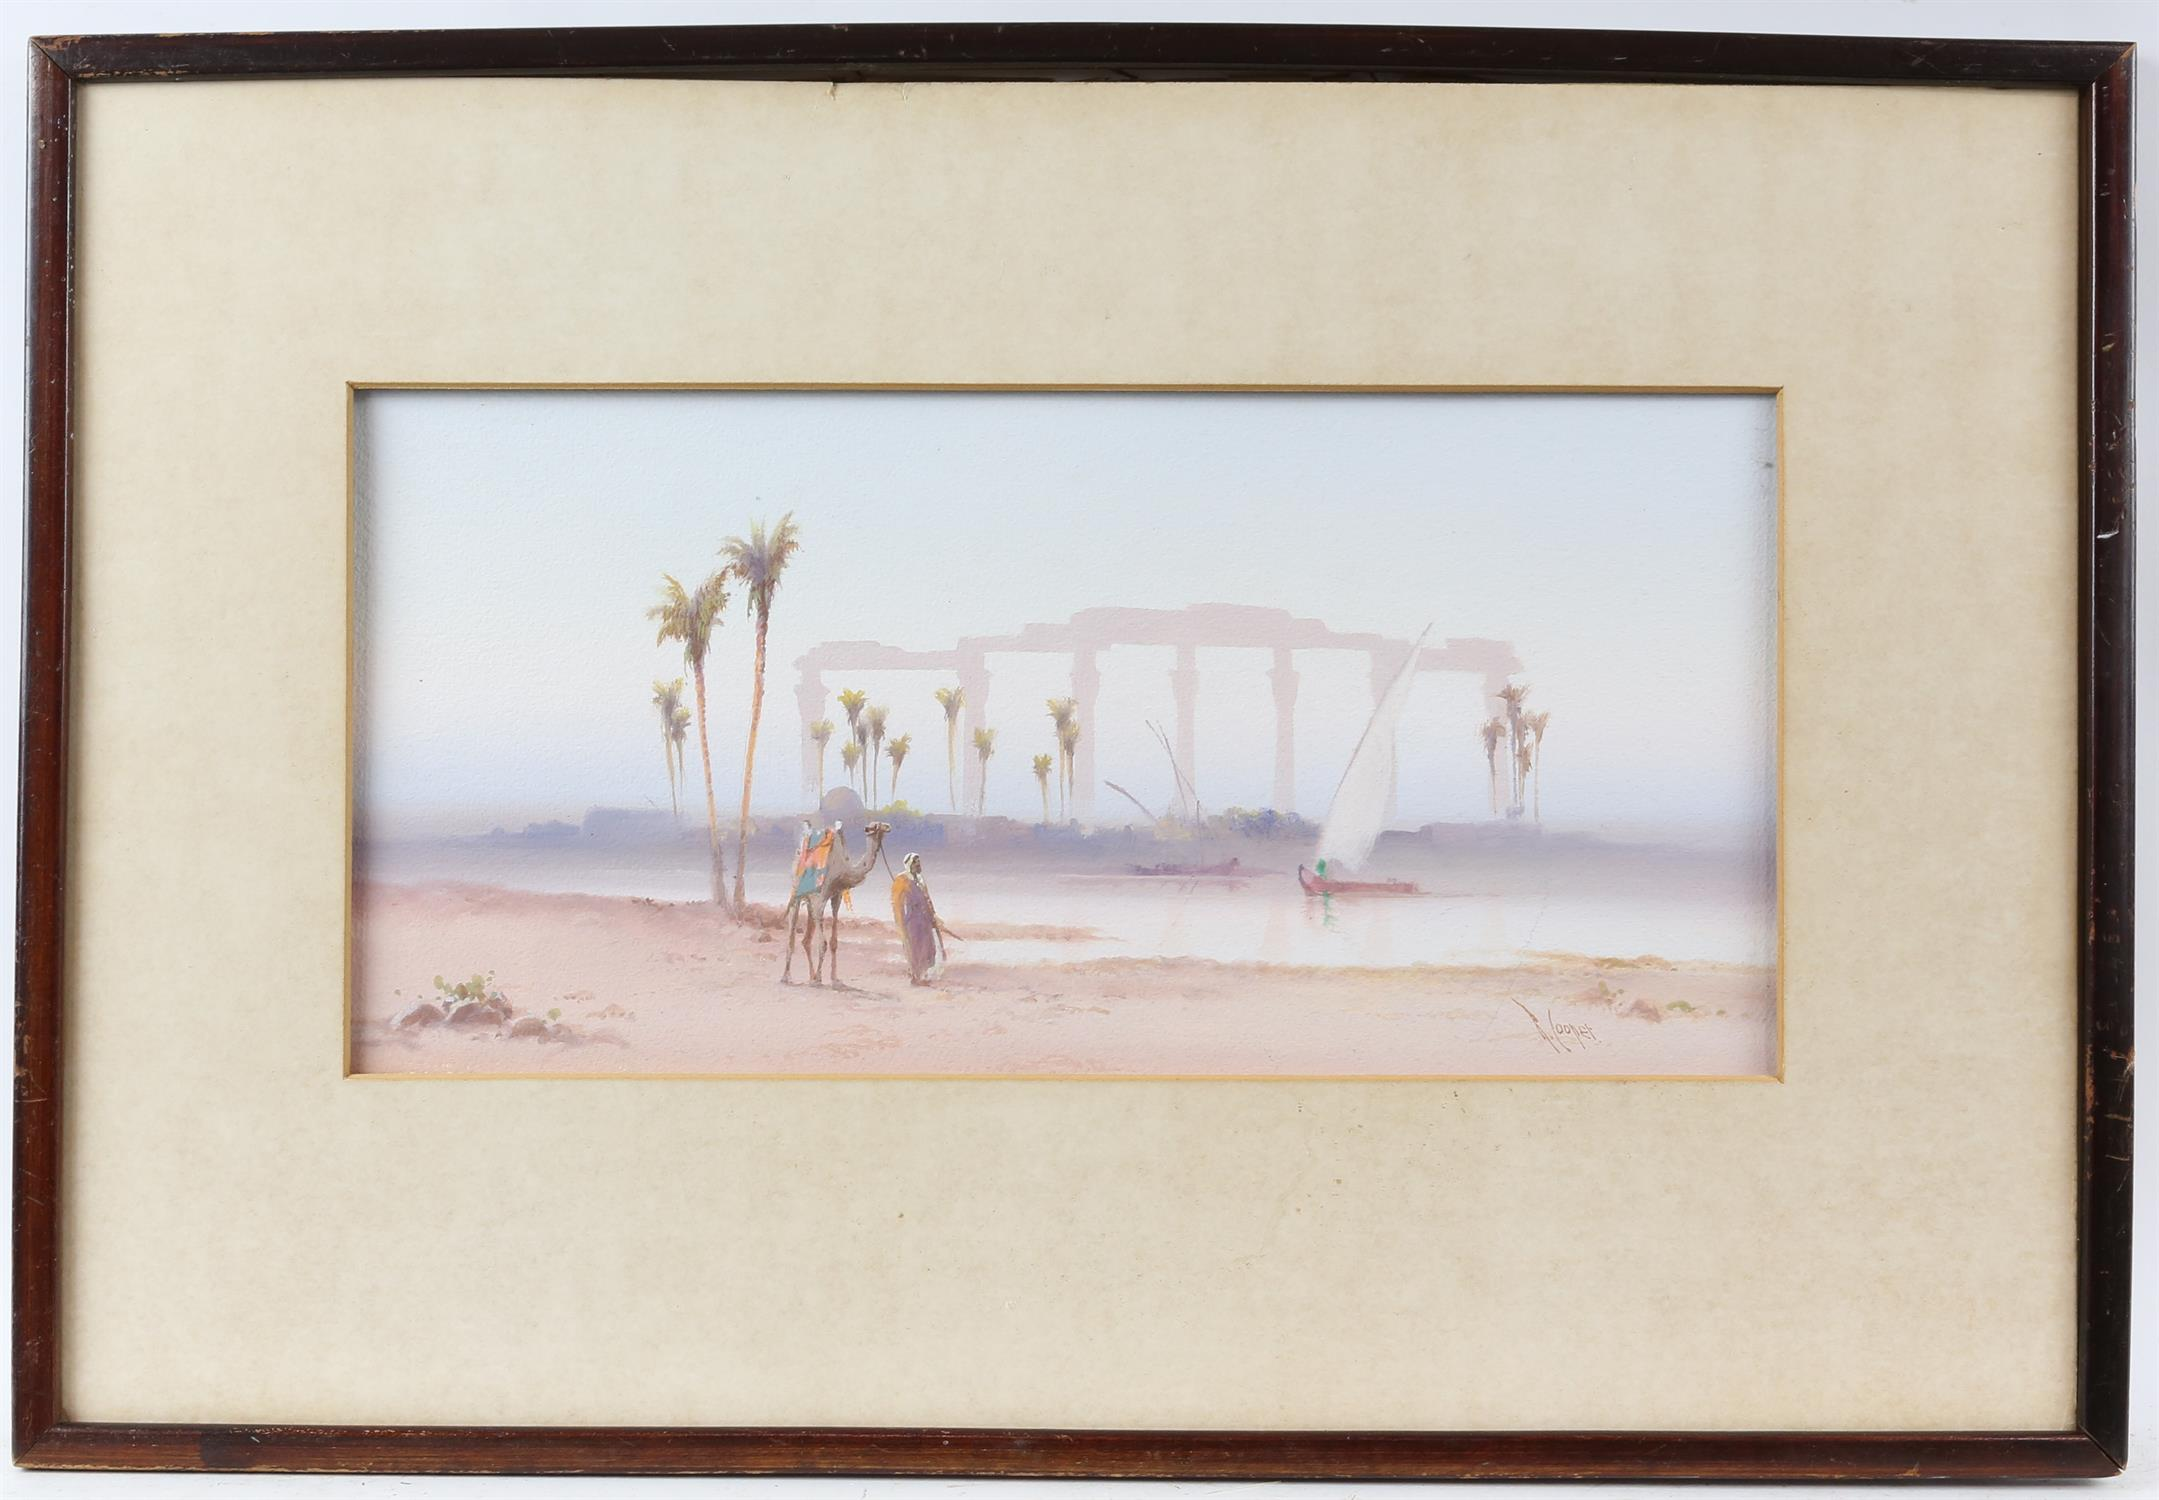 REVISED ESTIMATE Reginald Cooper, (early 20th century), Egyptian scene with a man with a camel and - Image 2 of 4